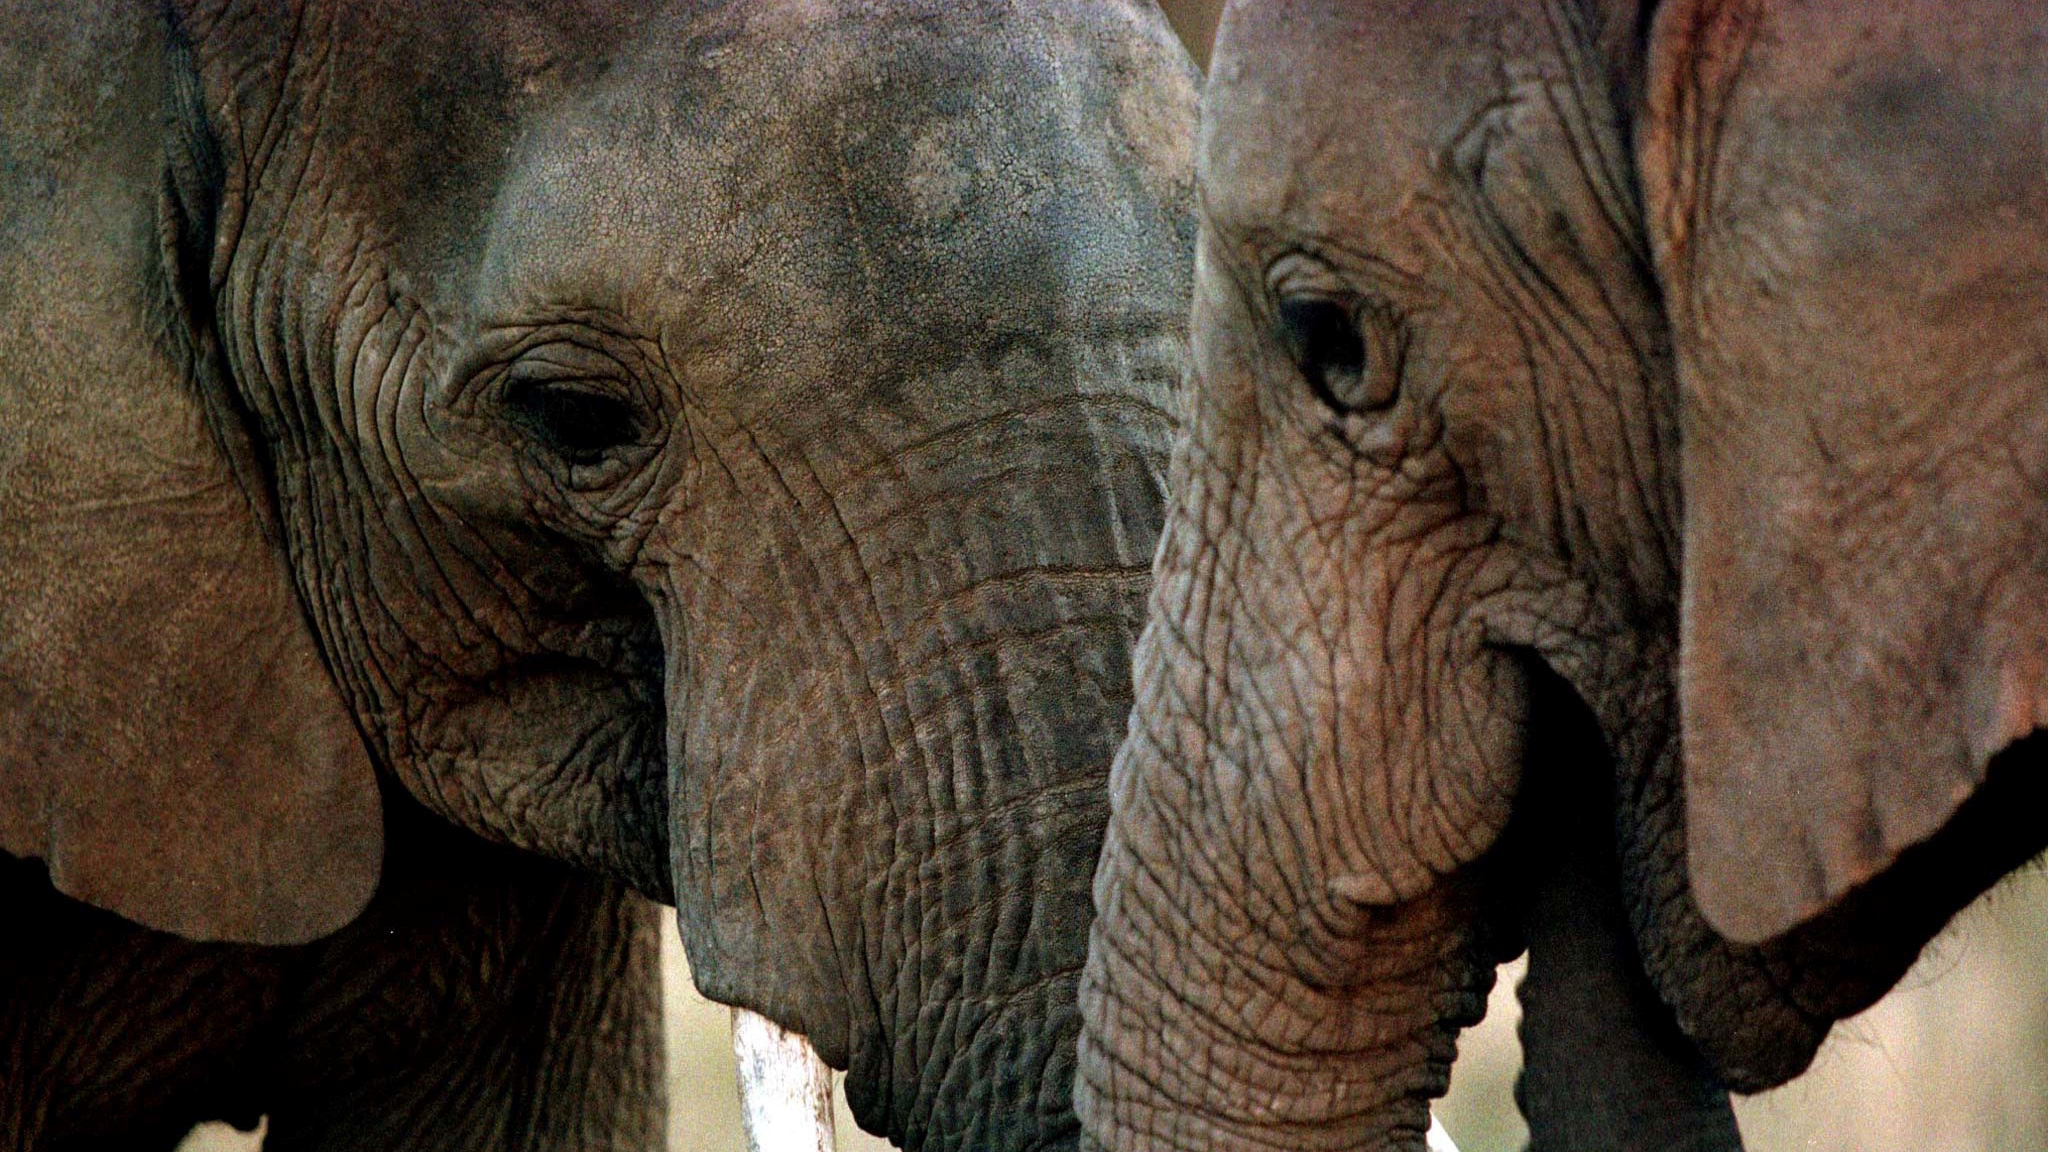 A pair of elephants are seen at a park in Knysna, South Africa